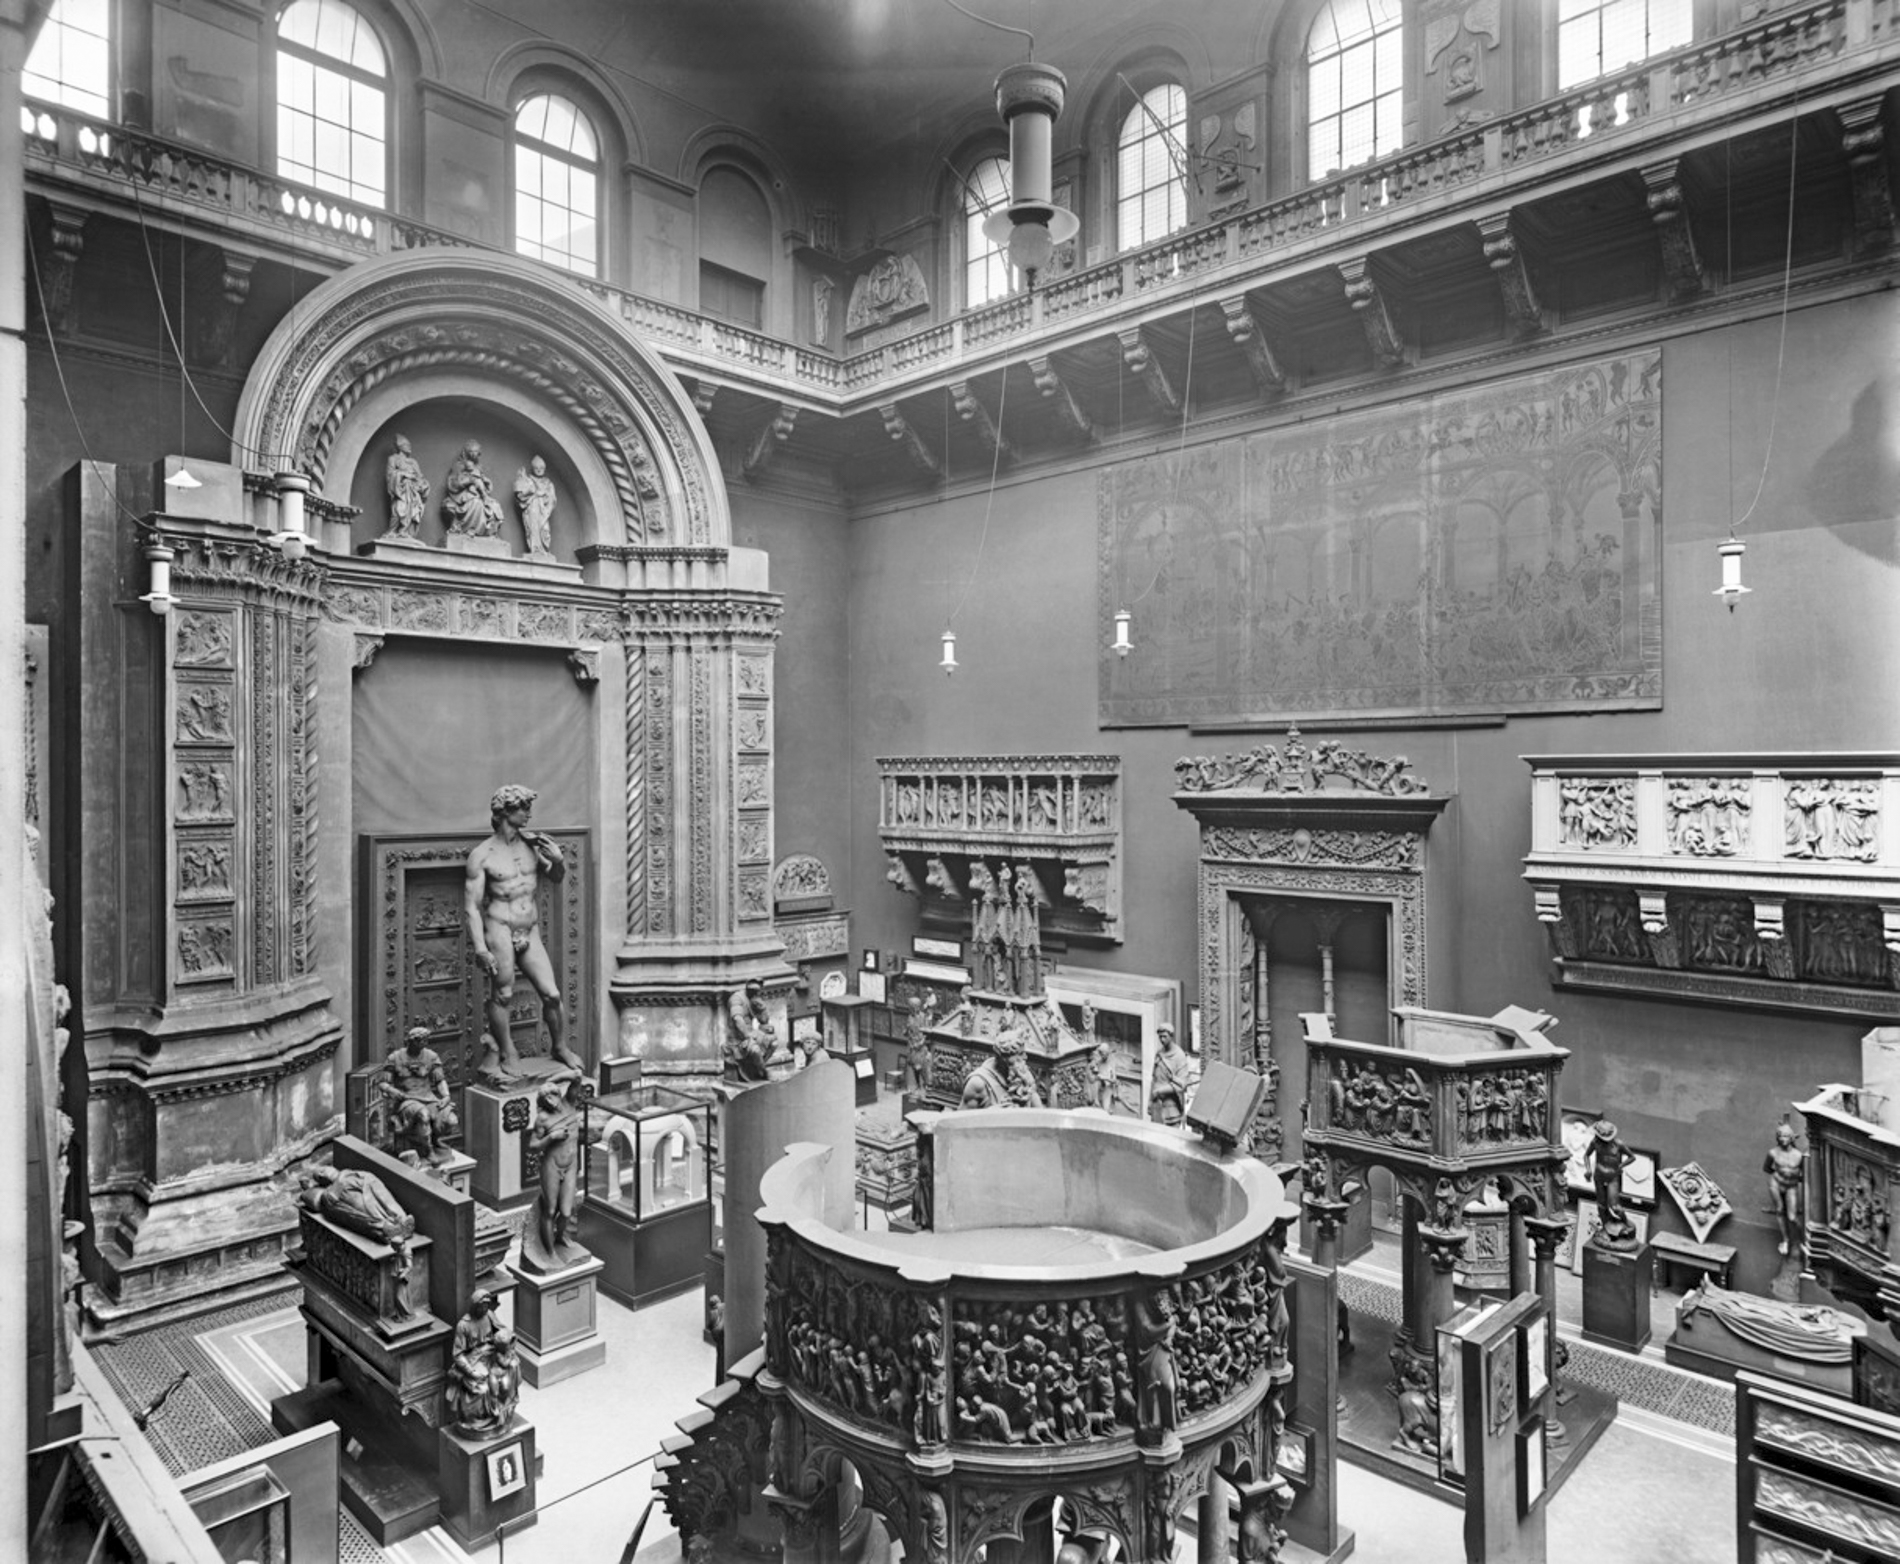 Construction of the V&A Cast Courts, 1871-2 © V&A Images. Image Courtesy of The Victoria & Albert Museum